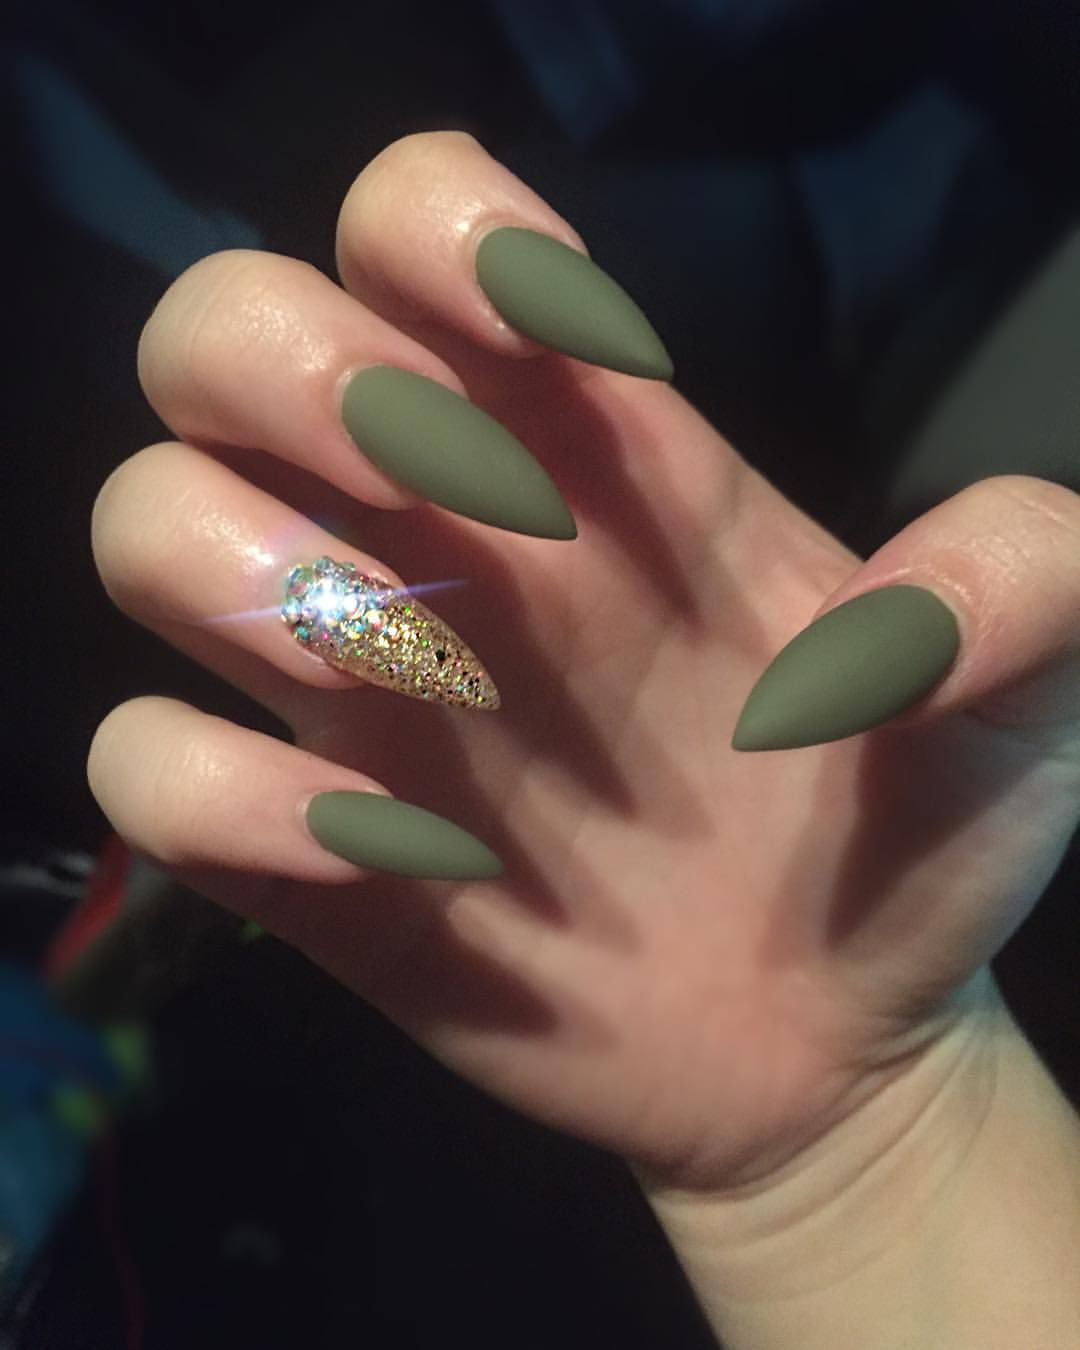 Pinterest Jordanchrome Acrylic Nails Green Olive Matte Stiletto